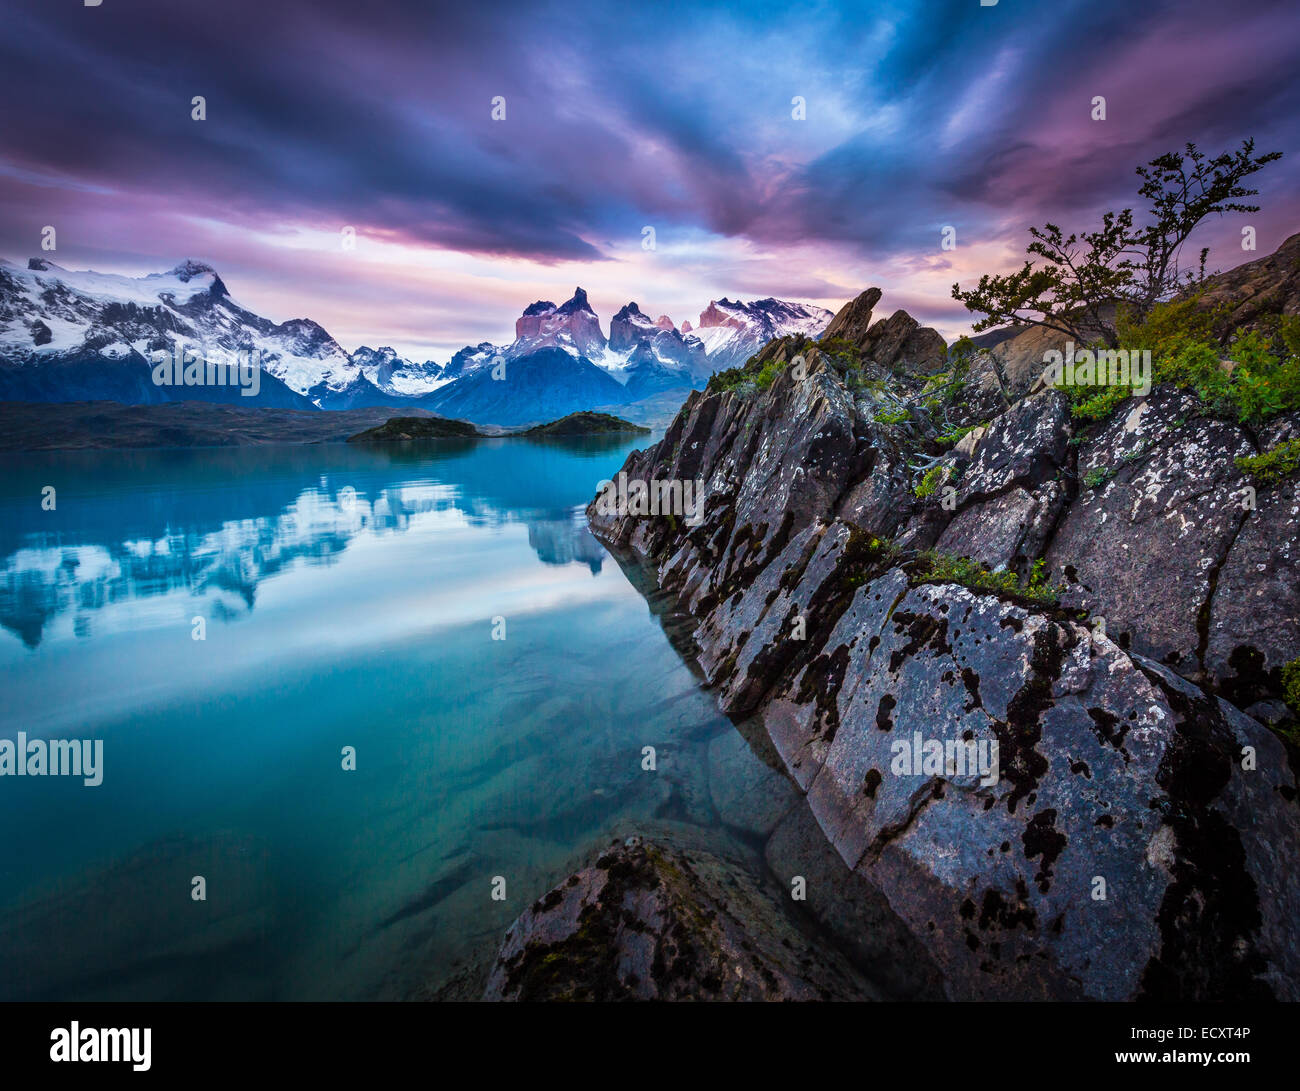 Torres del Paine National Park encompasses mountains, glaciers, lakes, and rivers in southern Chilean Patagonia. - Stock Image